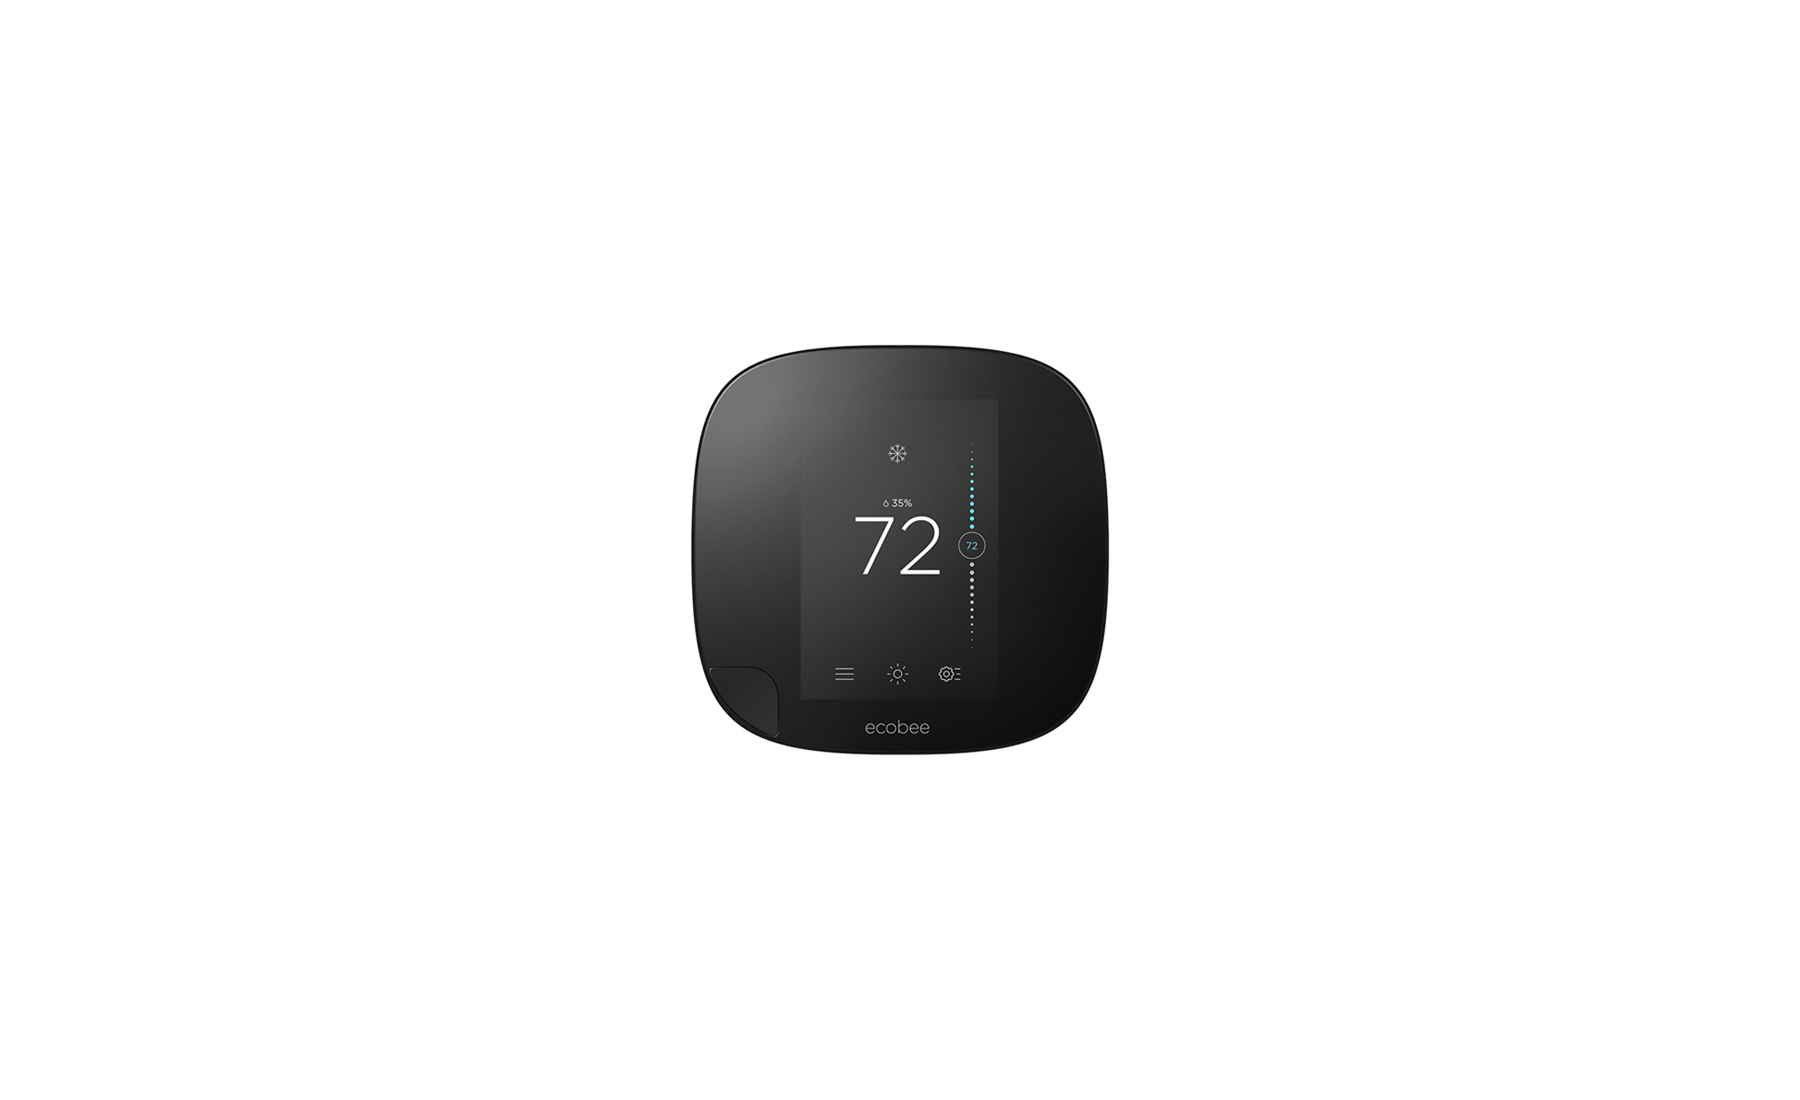 Ecobee Sensor Wink Ecobee3 Wi Fi Thermostat With Remote Sensor